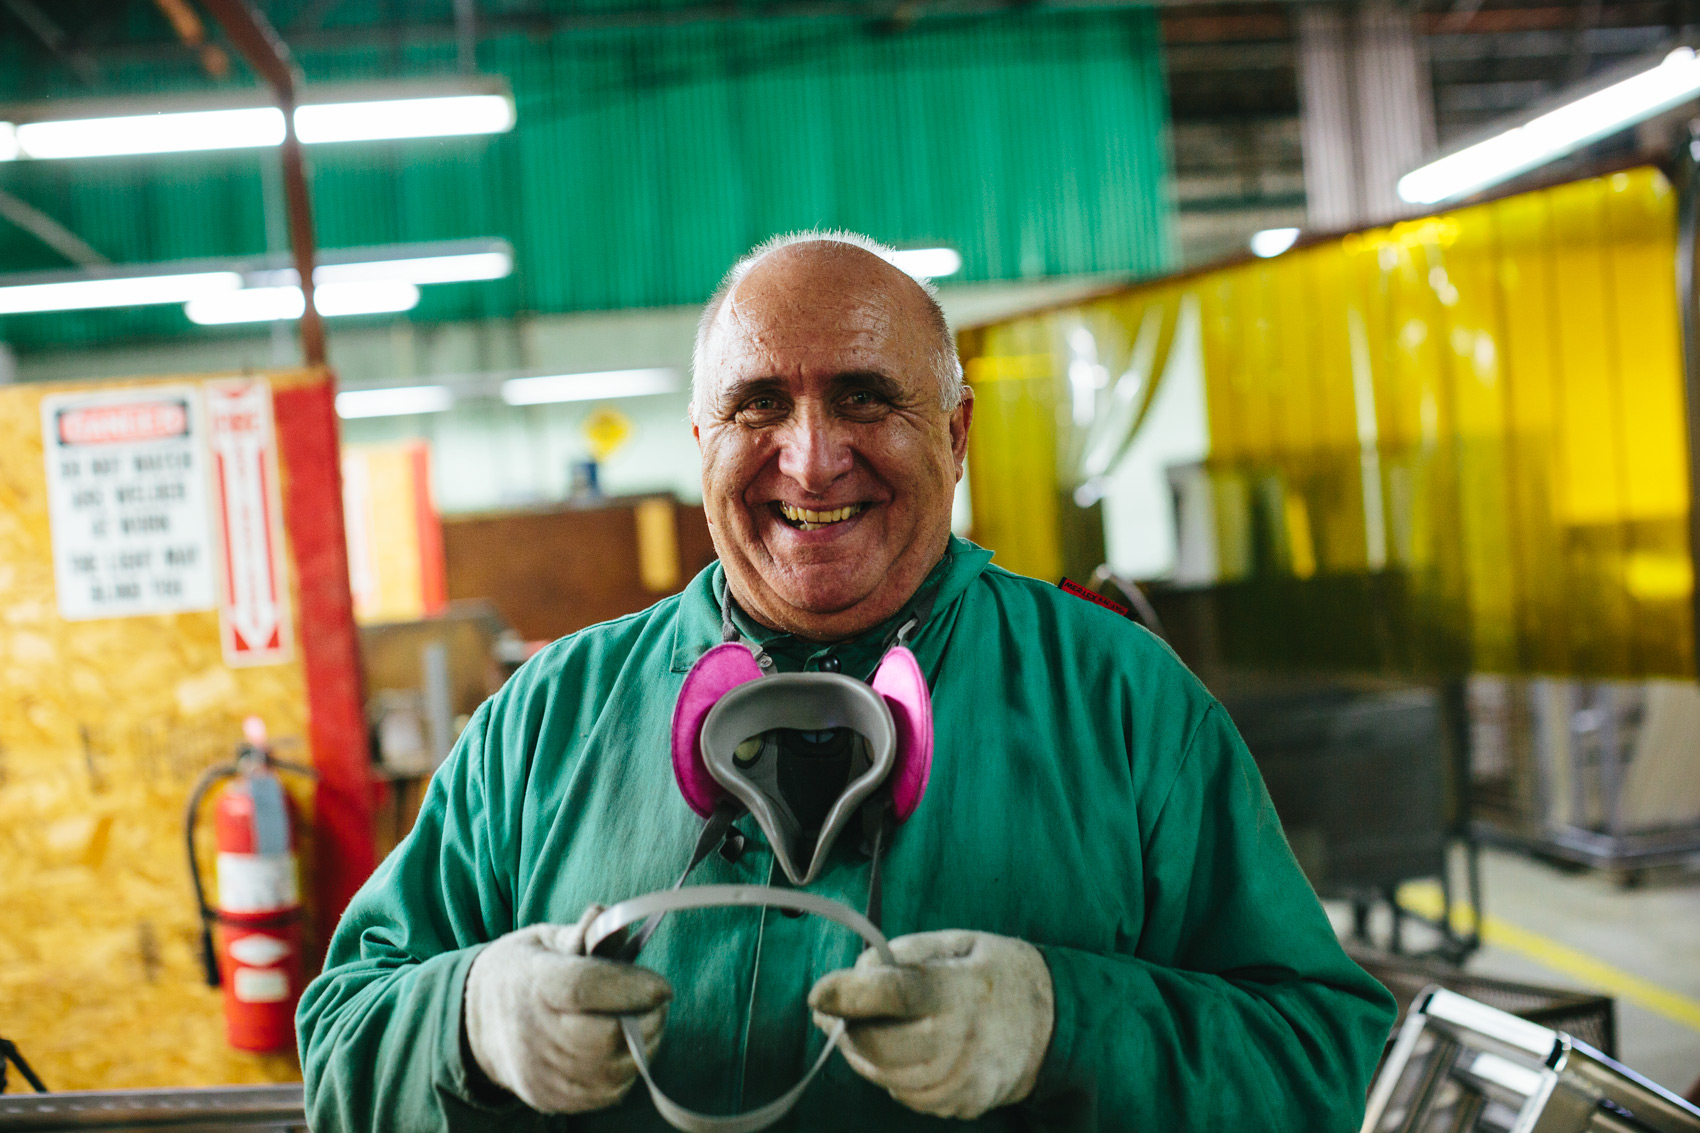 welder smiling in factory for washington dc editorial photography